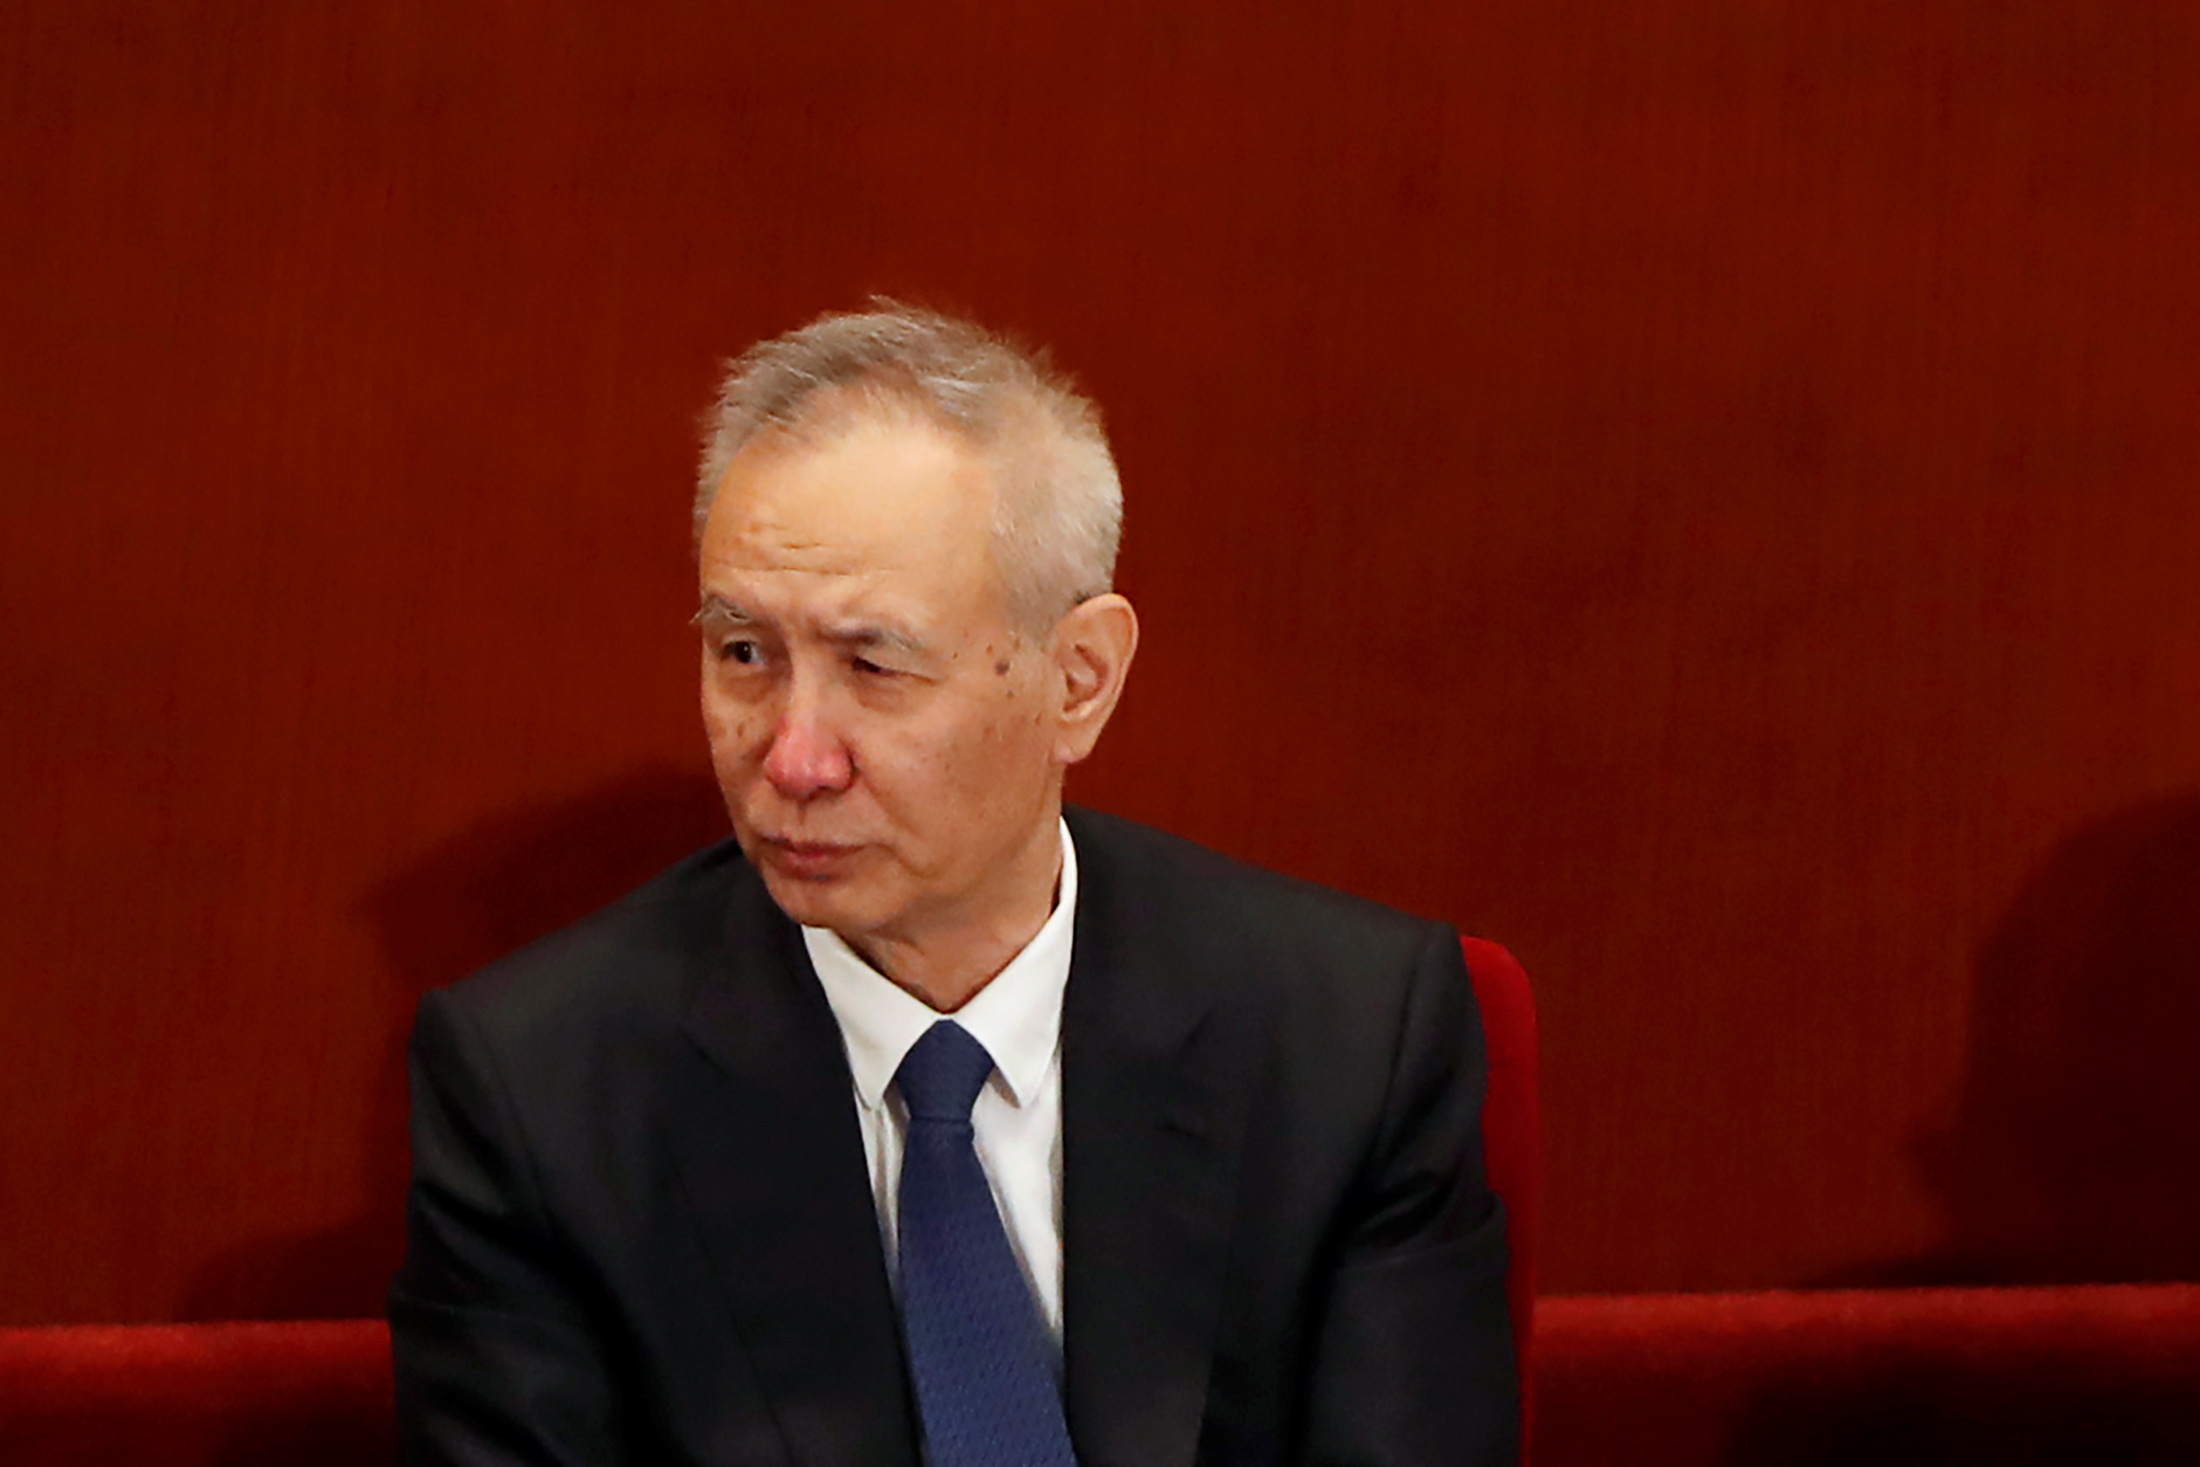 Chinese Vice Premier Liu He attends the opening session of the Chinese People's Political Consultative Conference (CPPCC) at the Great Hall of the People in Beijing, China May 21, 2020. REUTERS/Carlos Garcia Rawlins